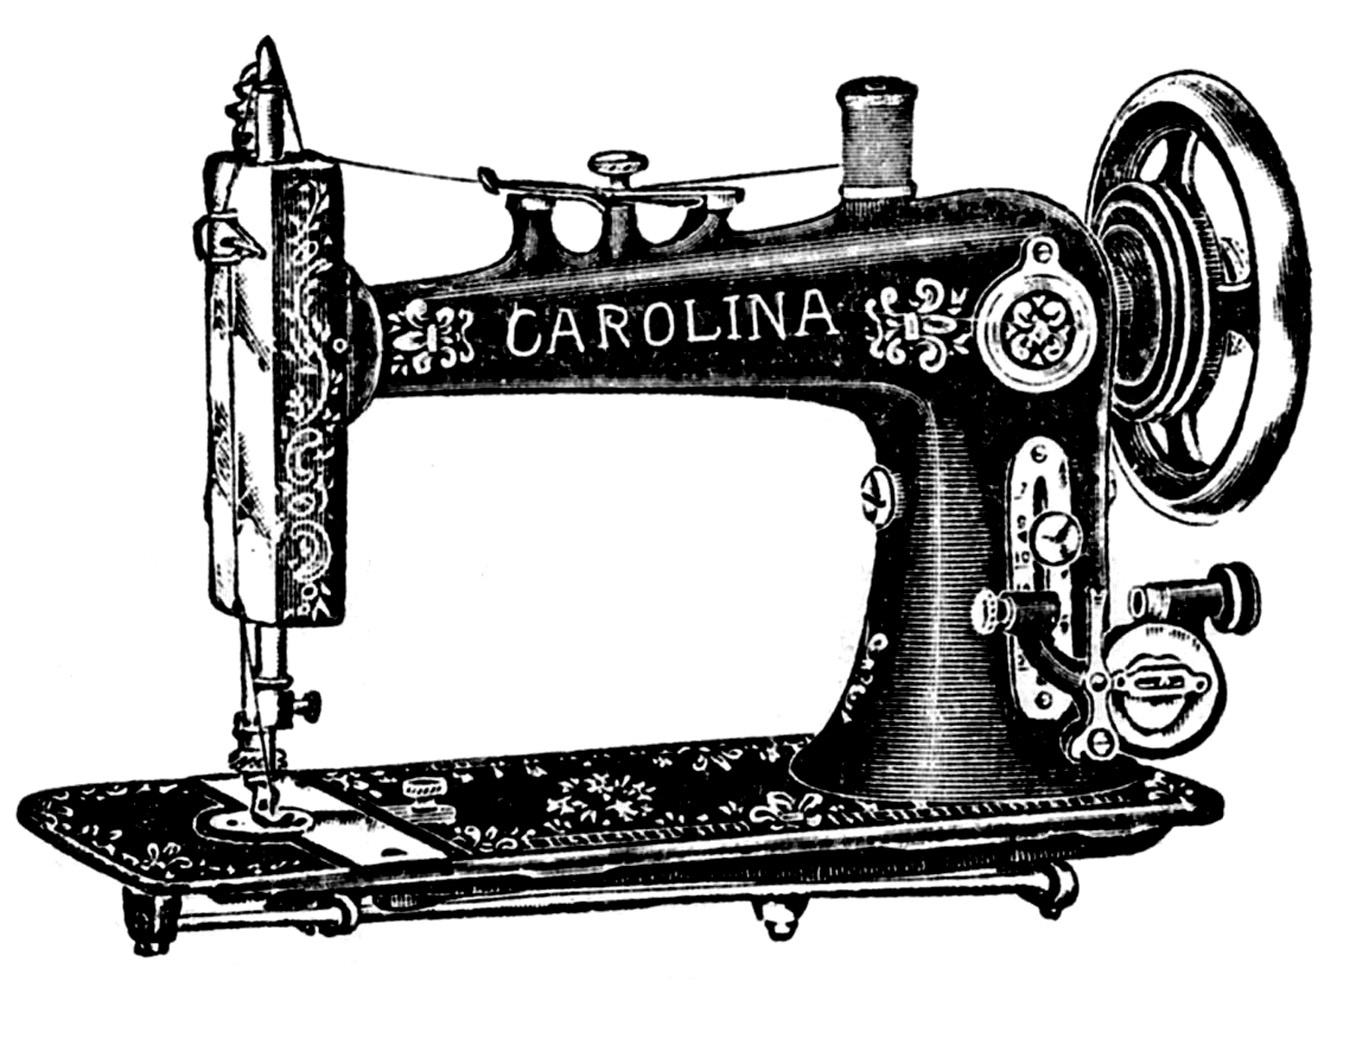 Sewing Machine clipart #16, Download drawings